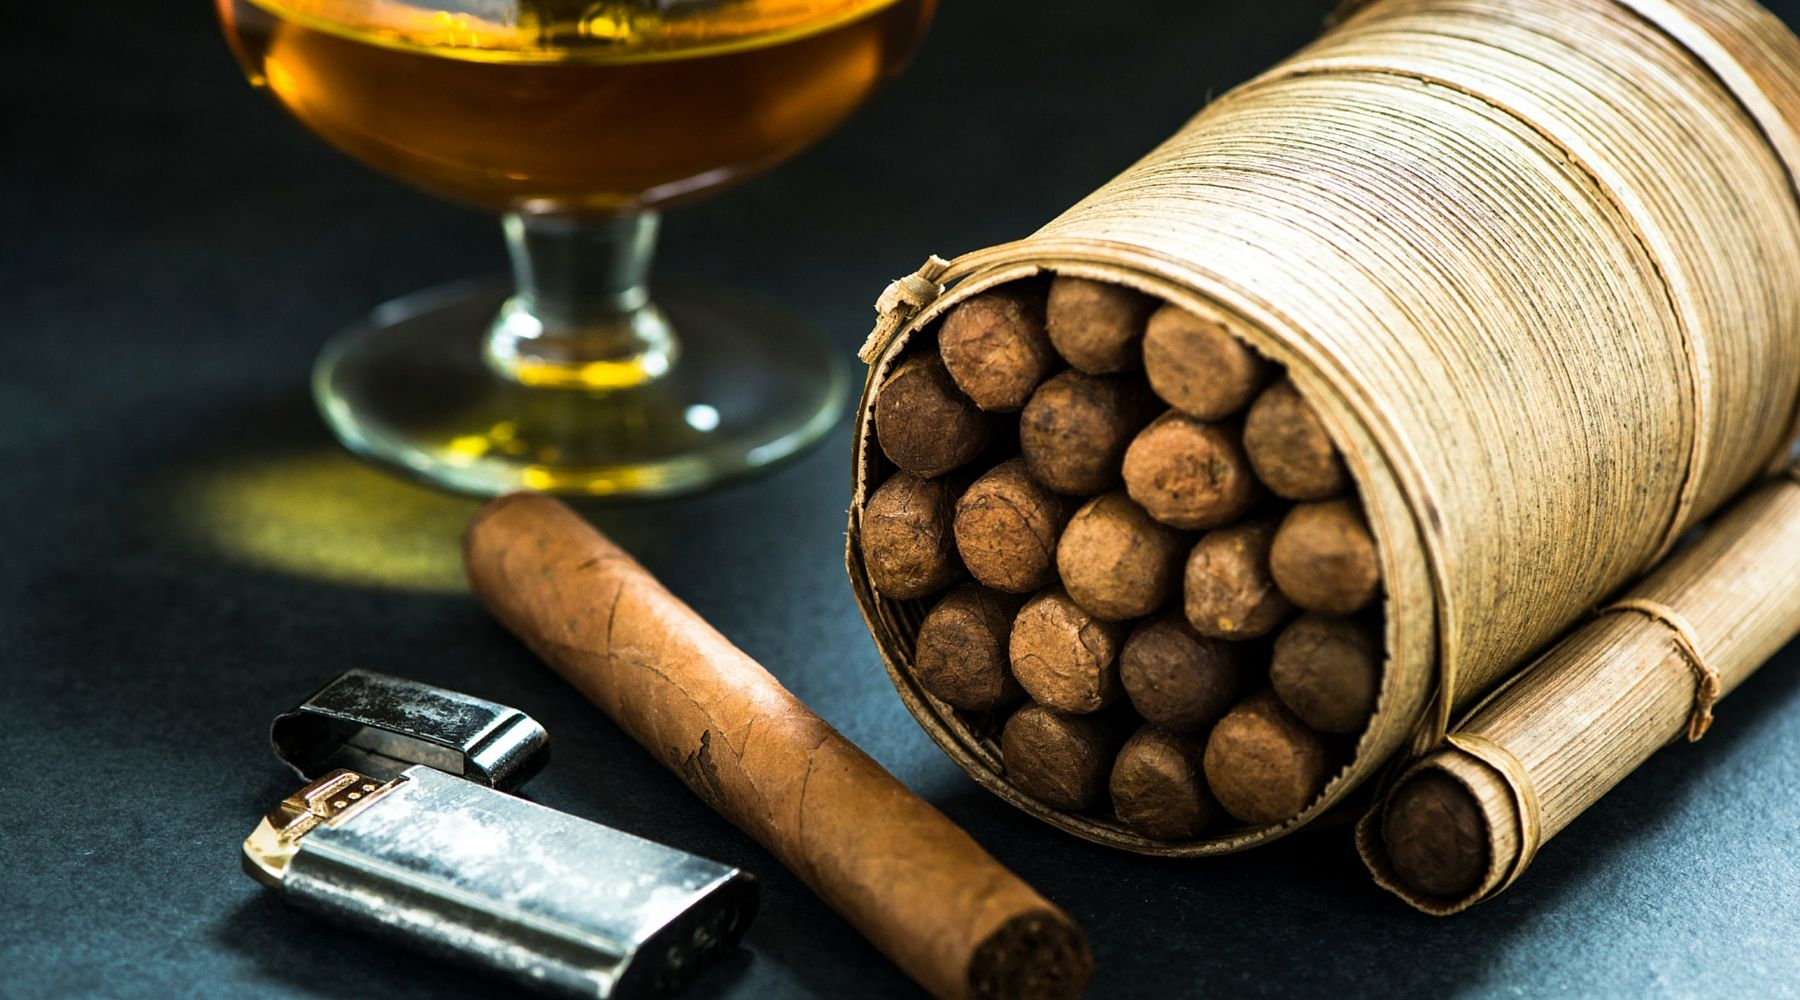 Cuba is known for its cigars, which are thought to be the finest in the world.